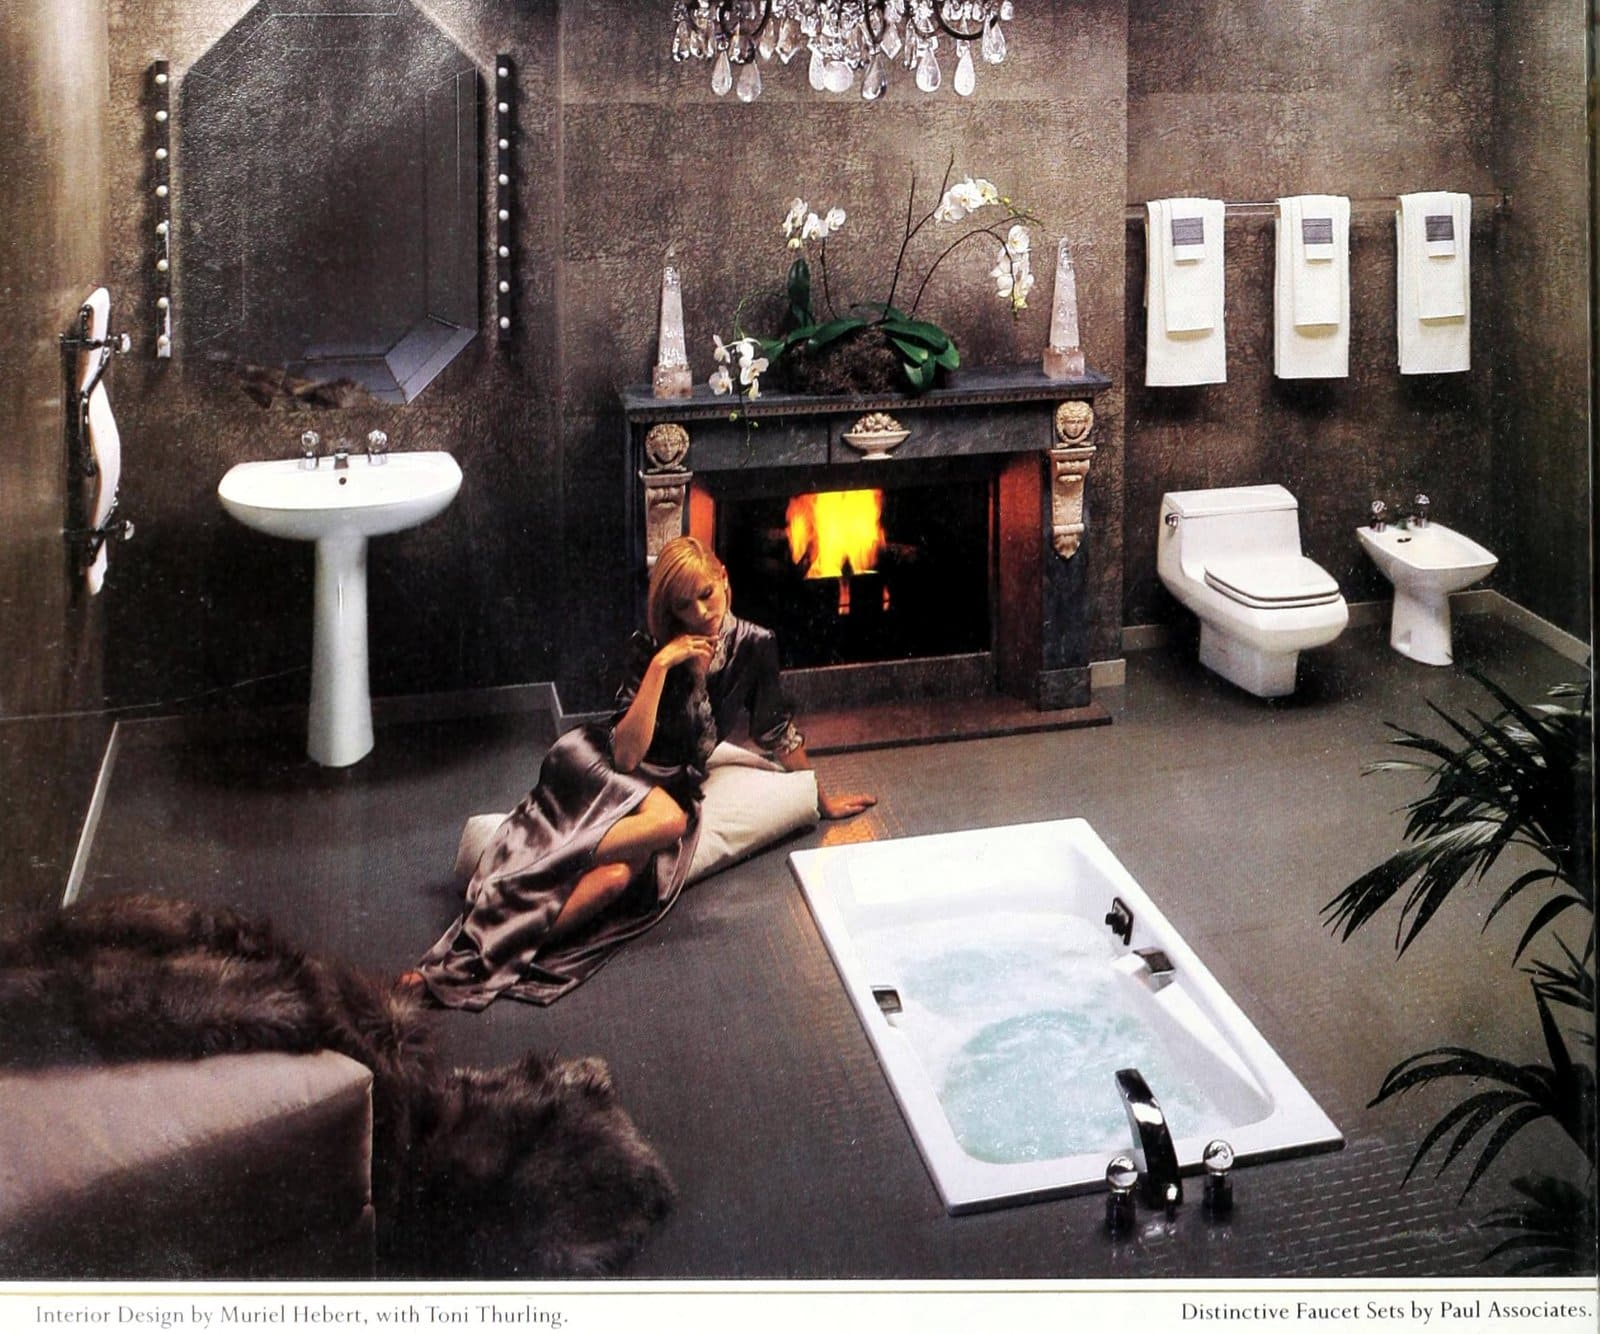 1980s bathroom decor - Brown floor and walls with white bathroom fixtures